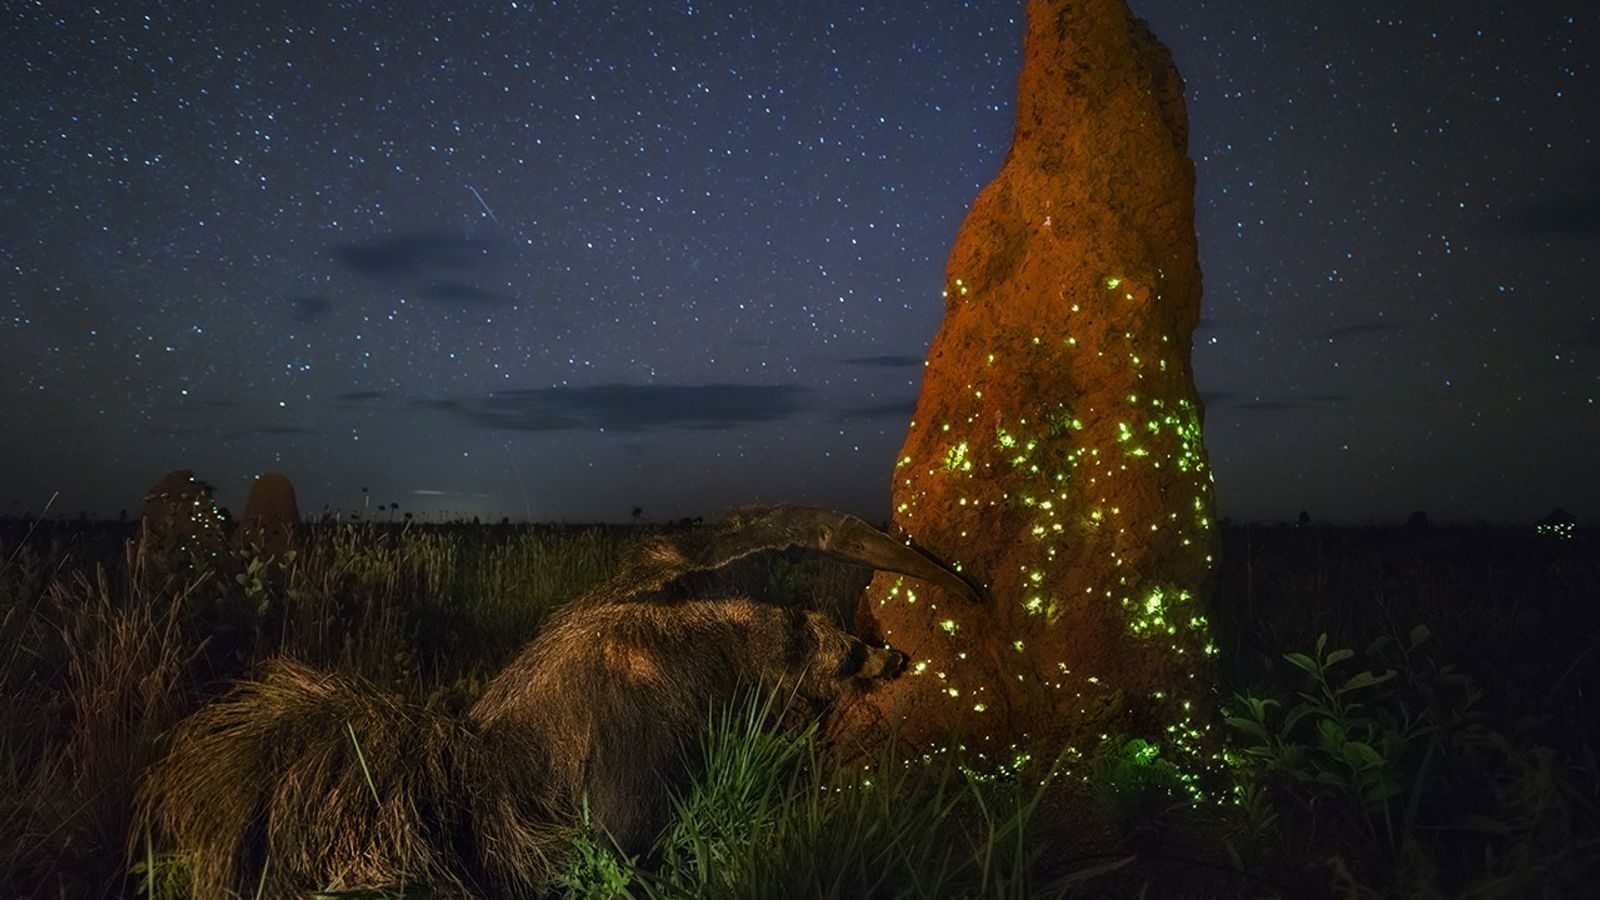 Under a starry sky at the start of the rainy season, this termite mound on the ...